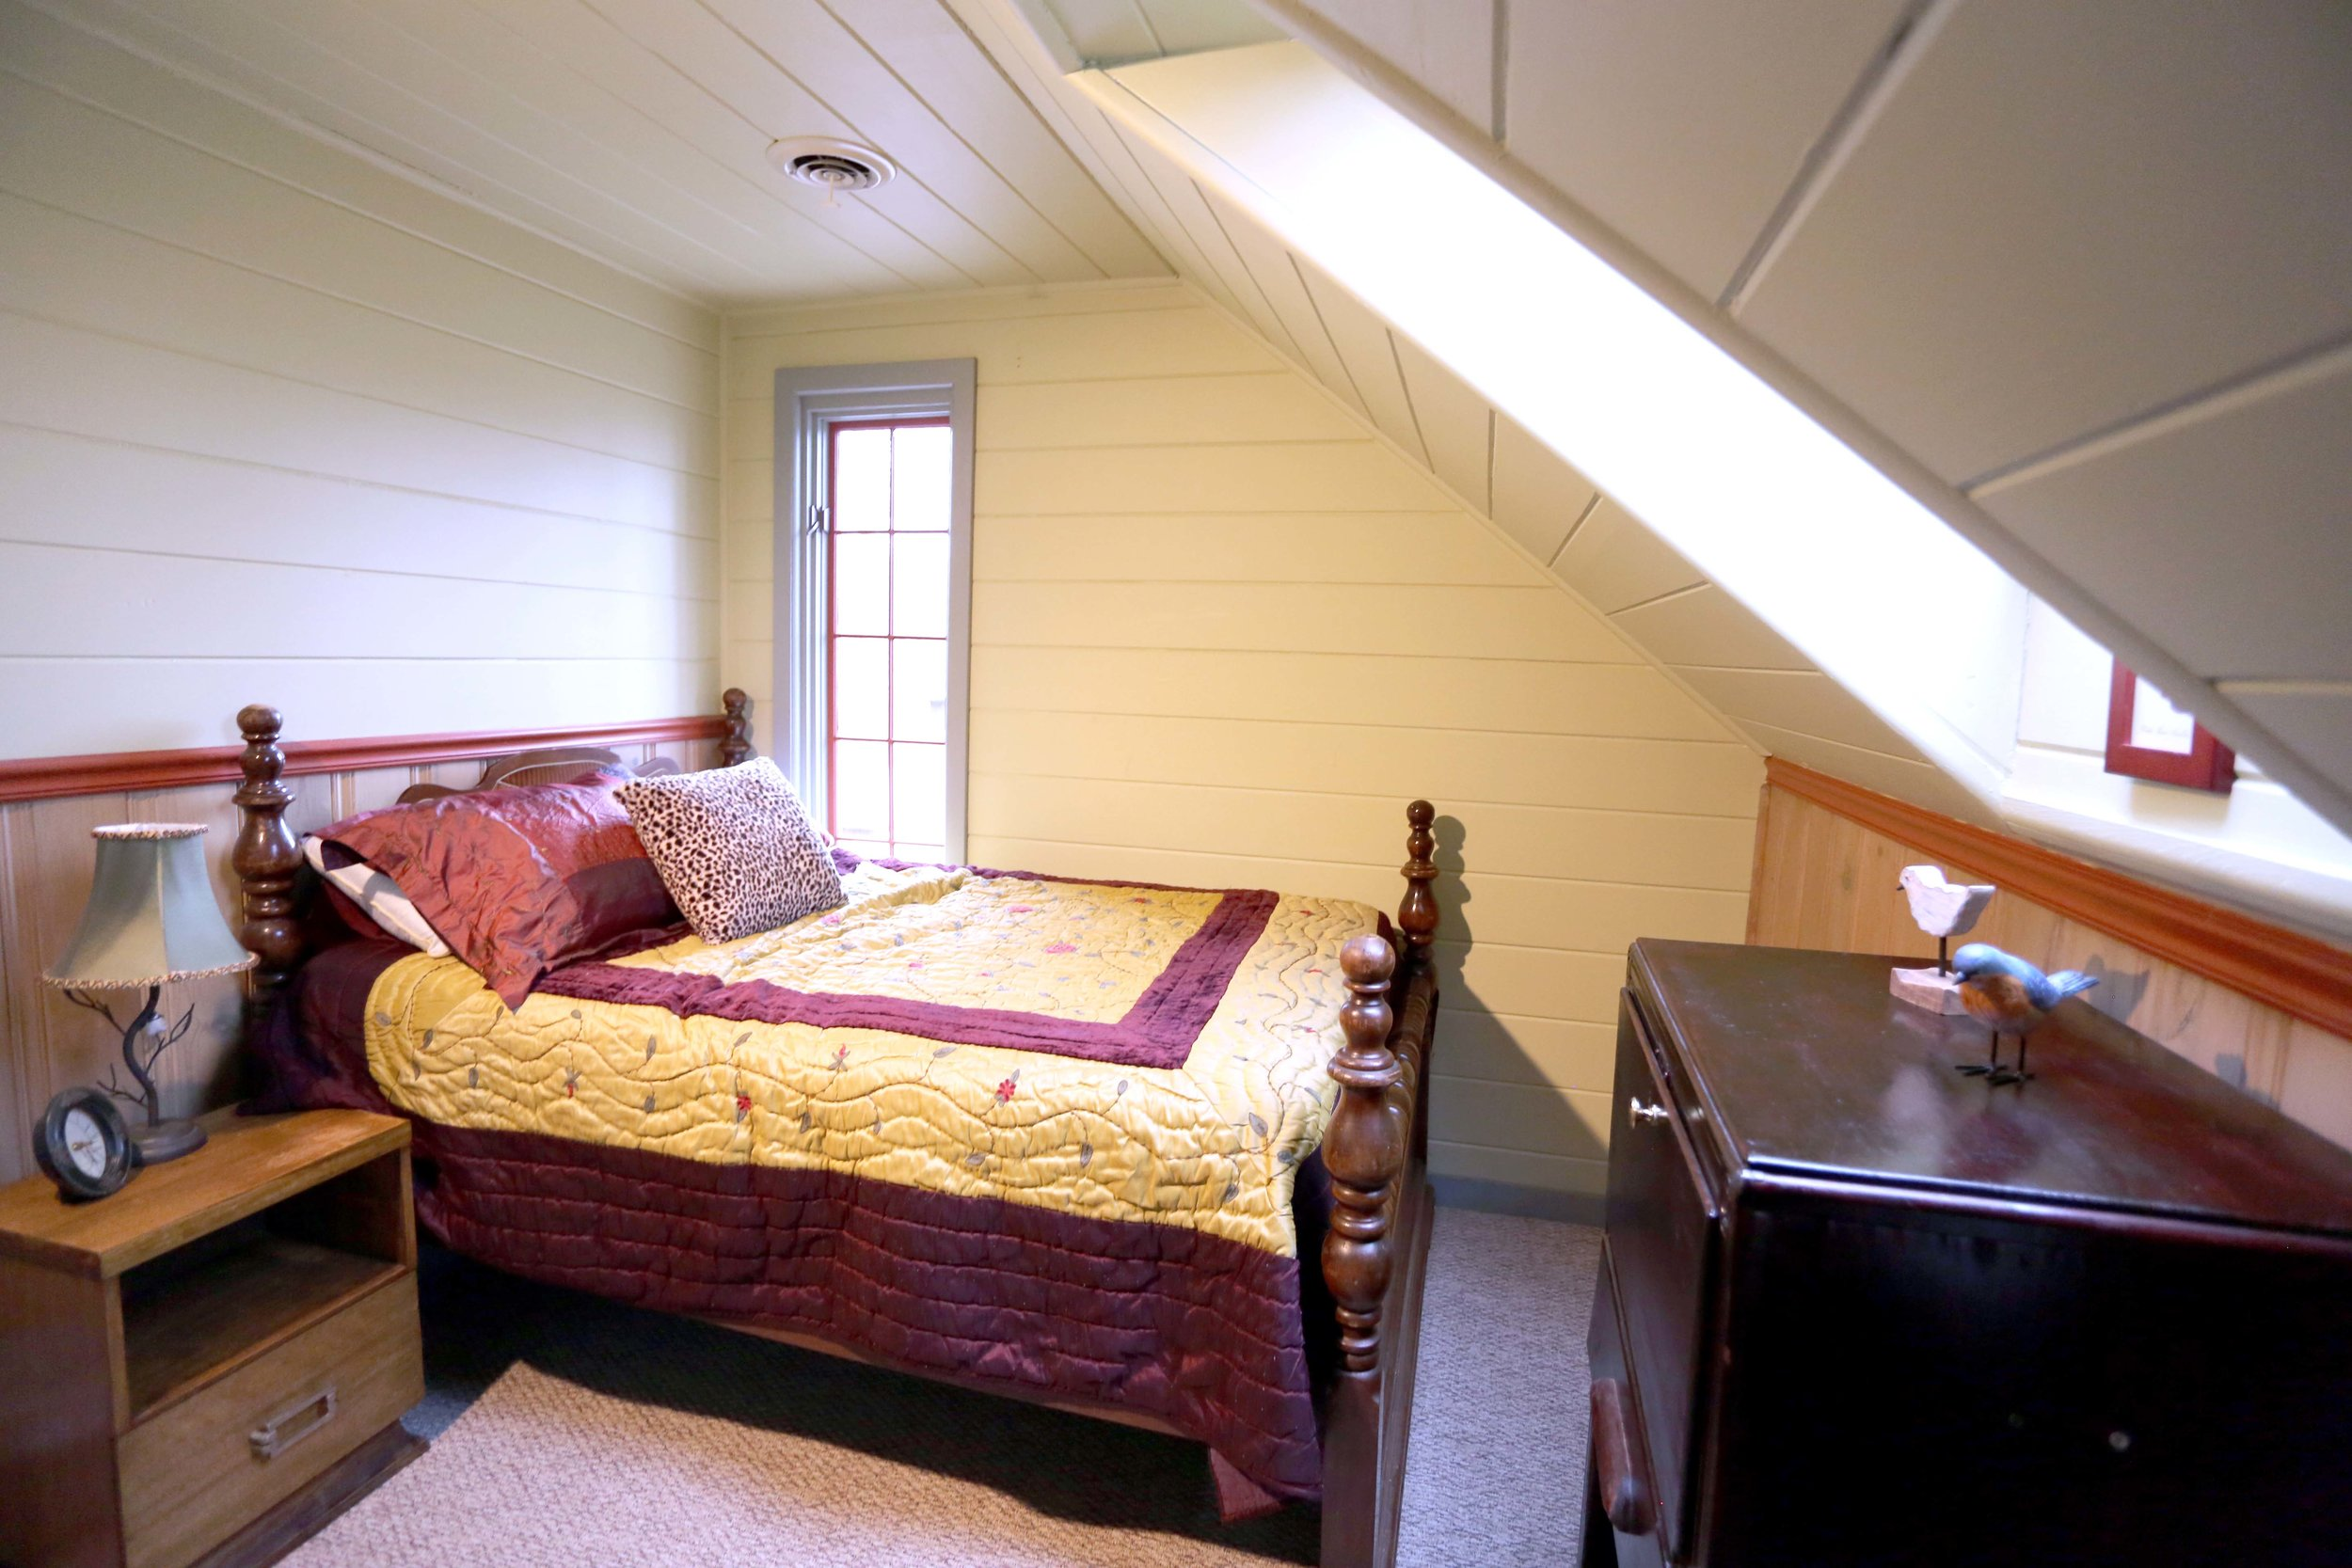 The Bird Room in the LakeTrail House has a queen bed. It shares a bathroom (toilet, shower, and claw-foot tub) with the other room in the East Wing of house.